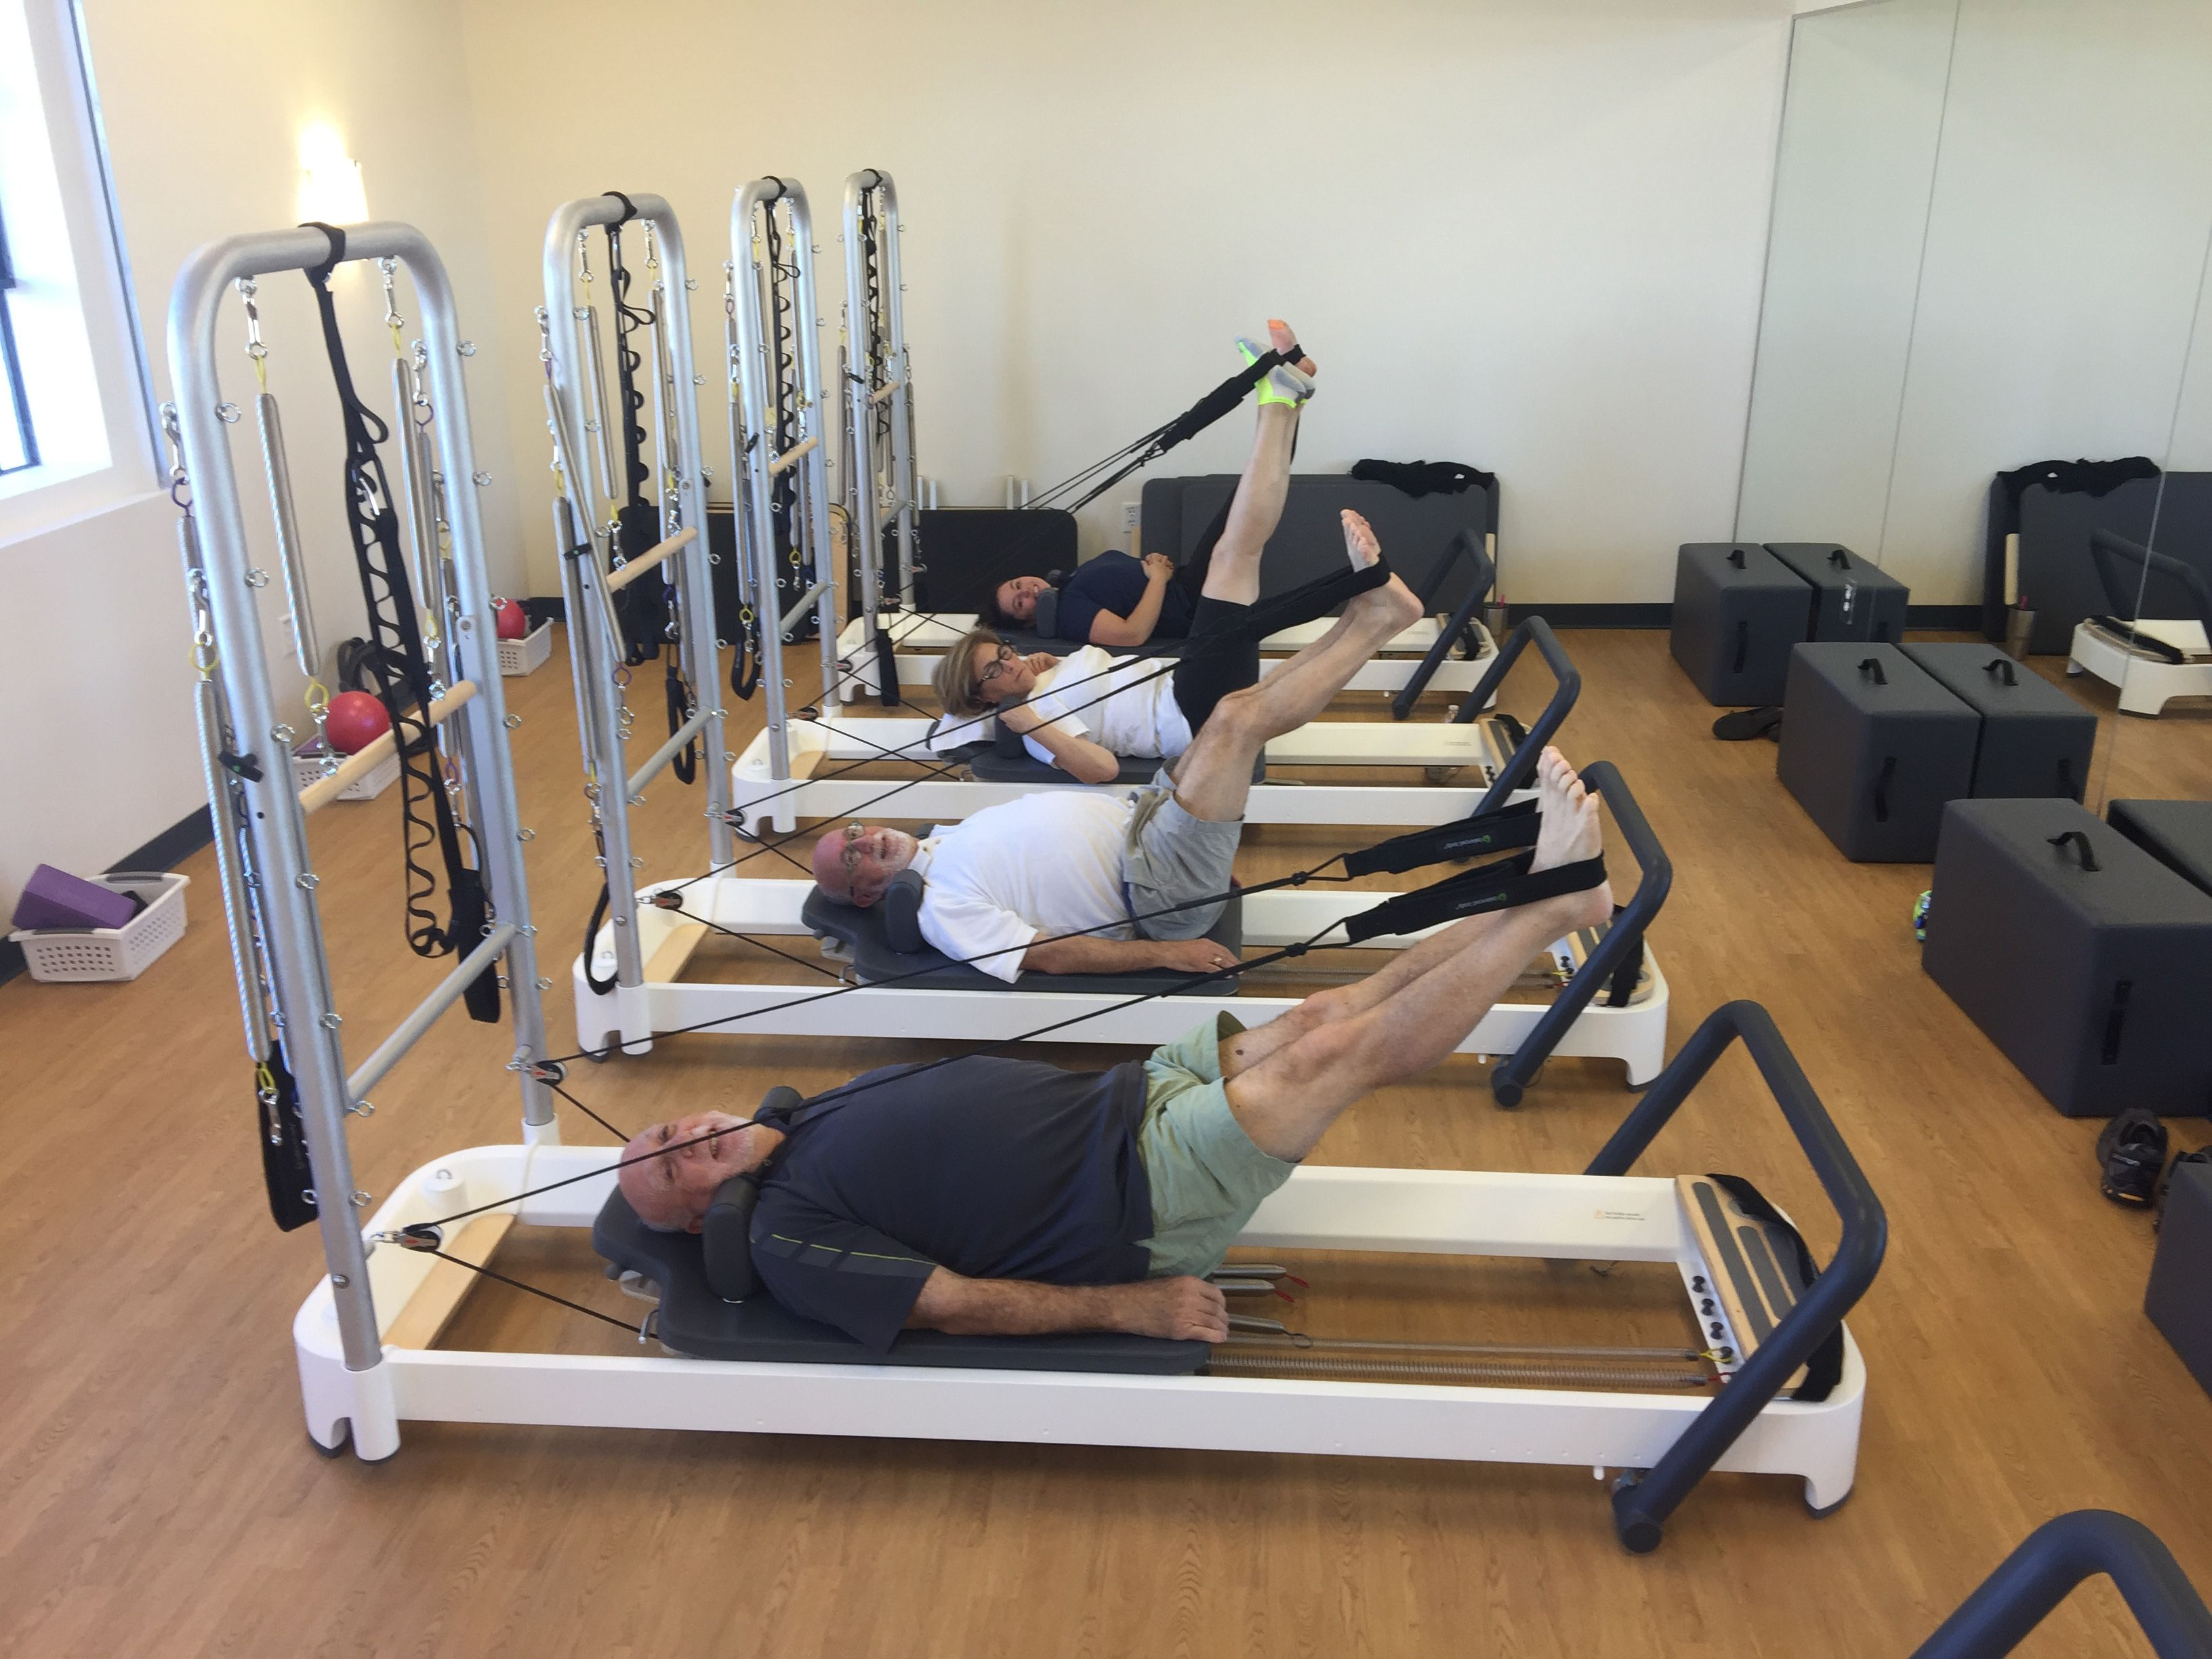 The Bgfjcc S State Of The Art Fitness Center Offers An Extensive Variety Of Cardio And Weight Equipment With P Weight Equipment Strength Training Fitness Class